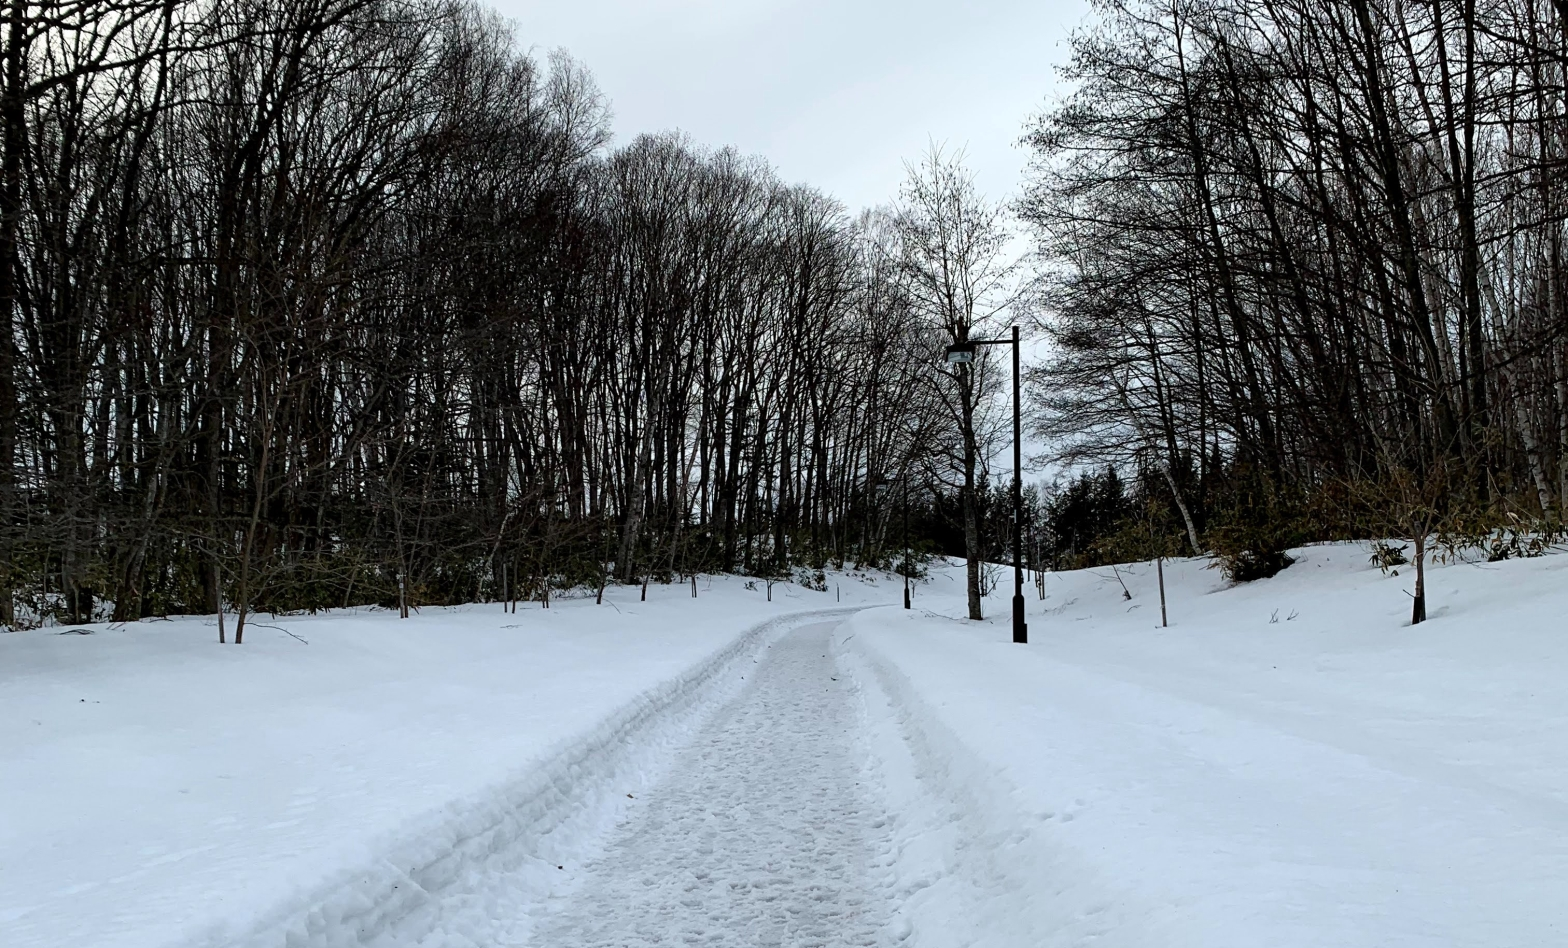 footpath in the woods covered in snow